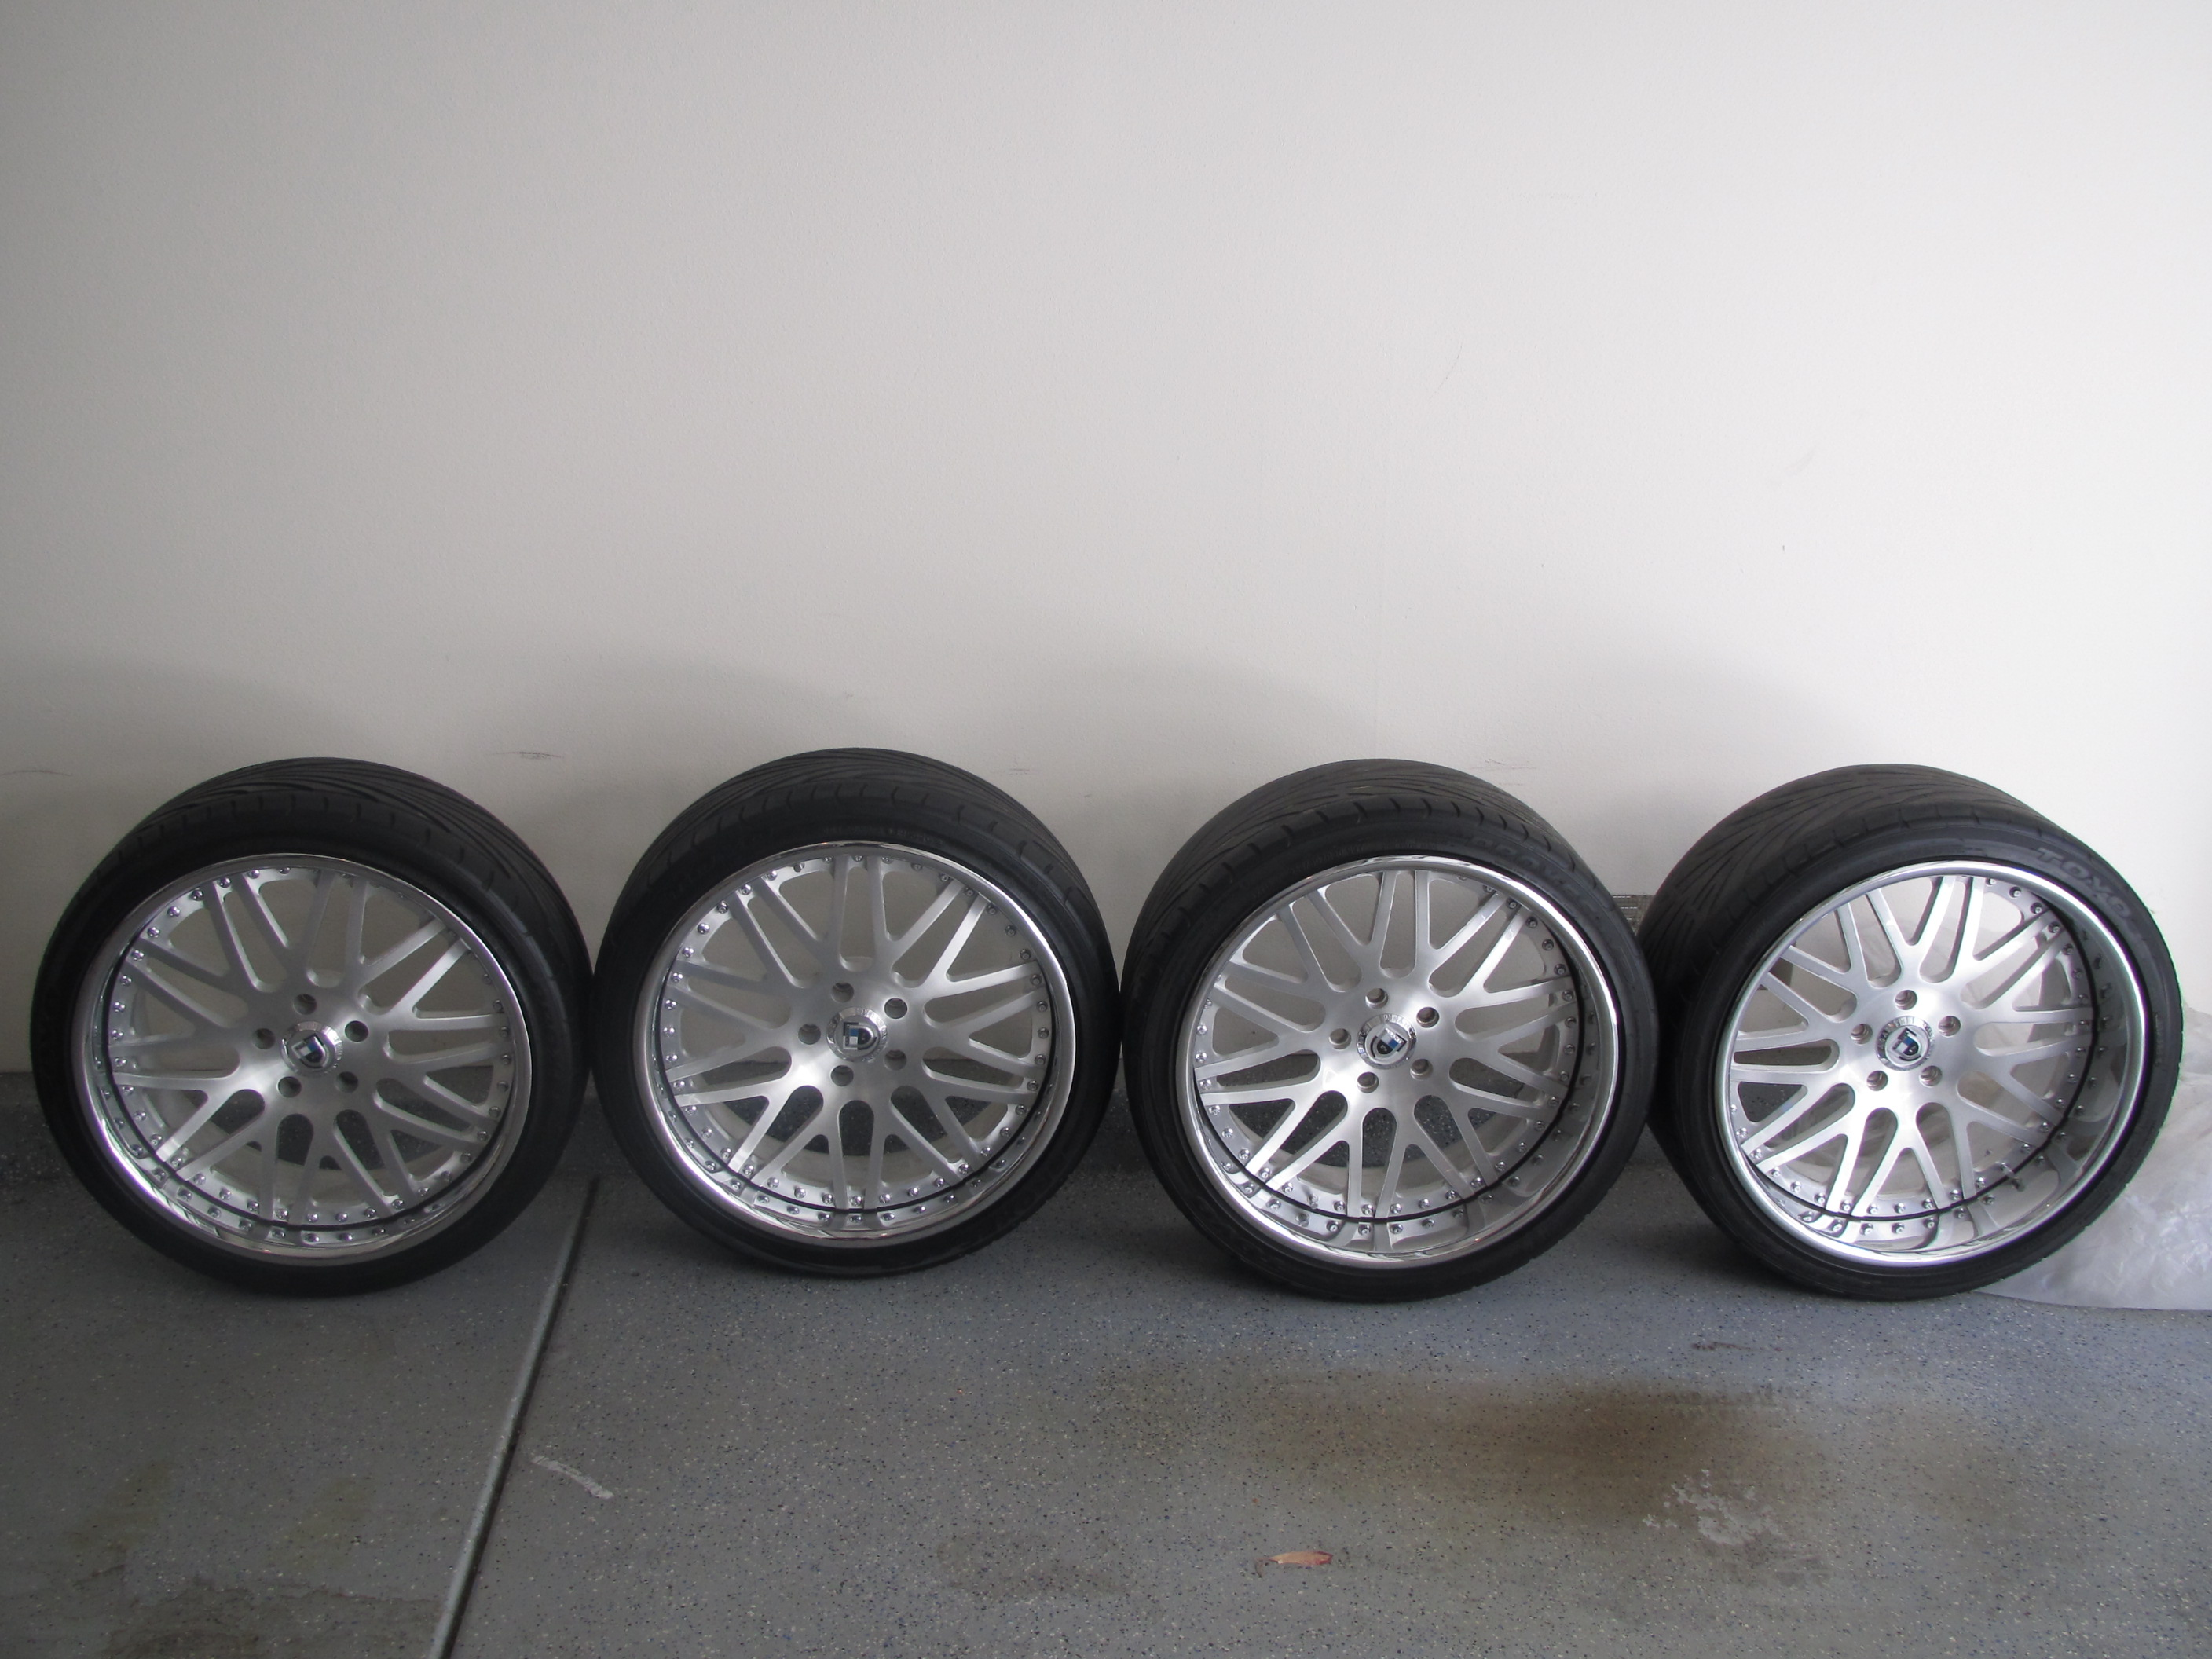 5 on 5 wheels for sale